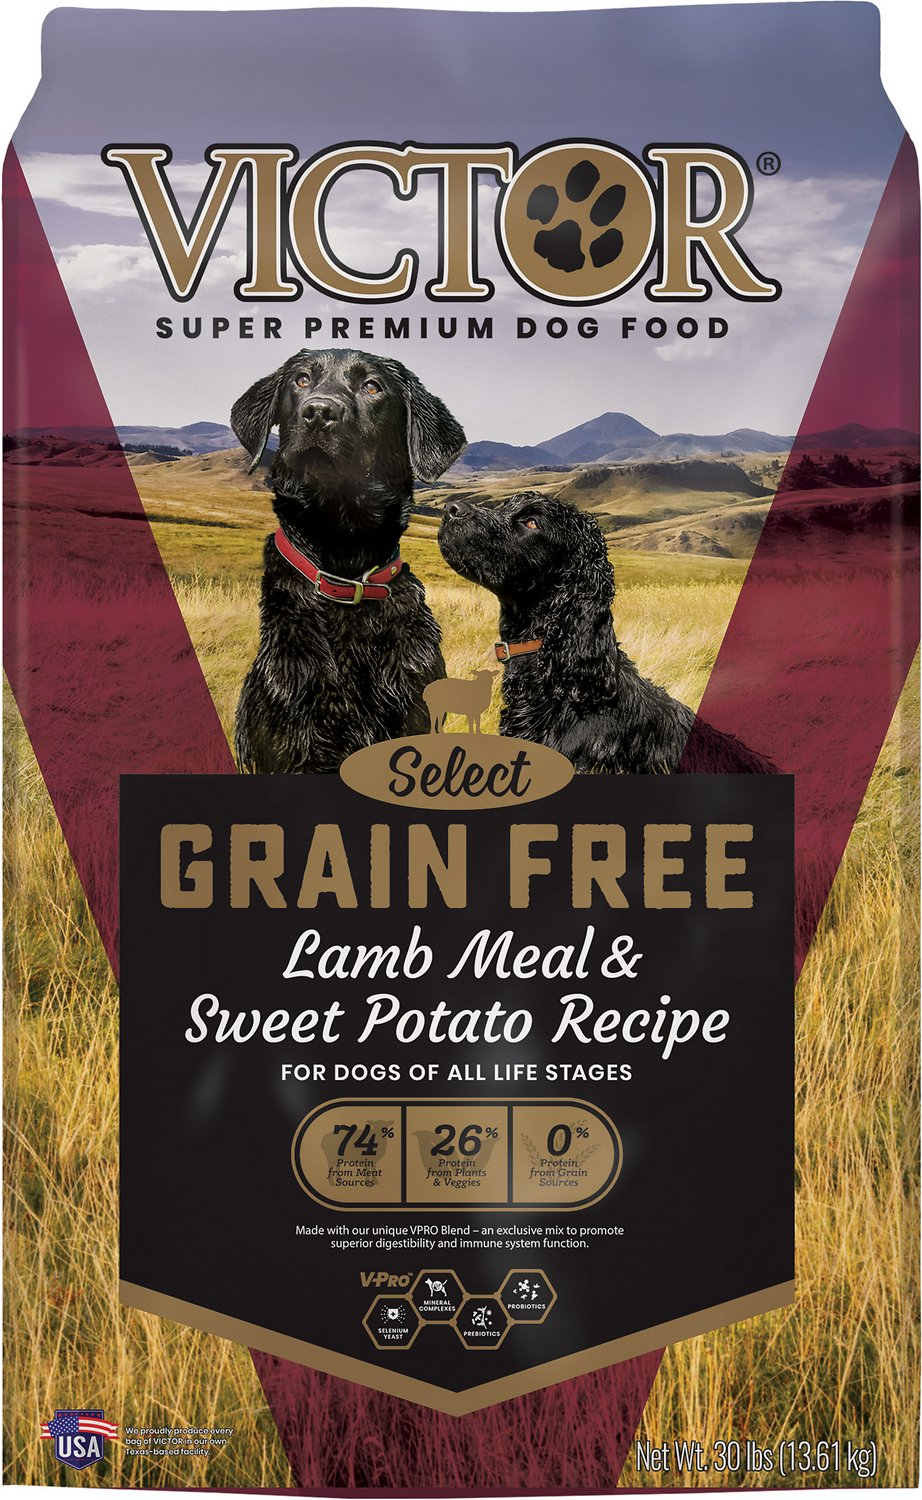 Victor Grain Free Dog Food Dry